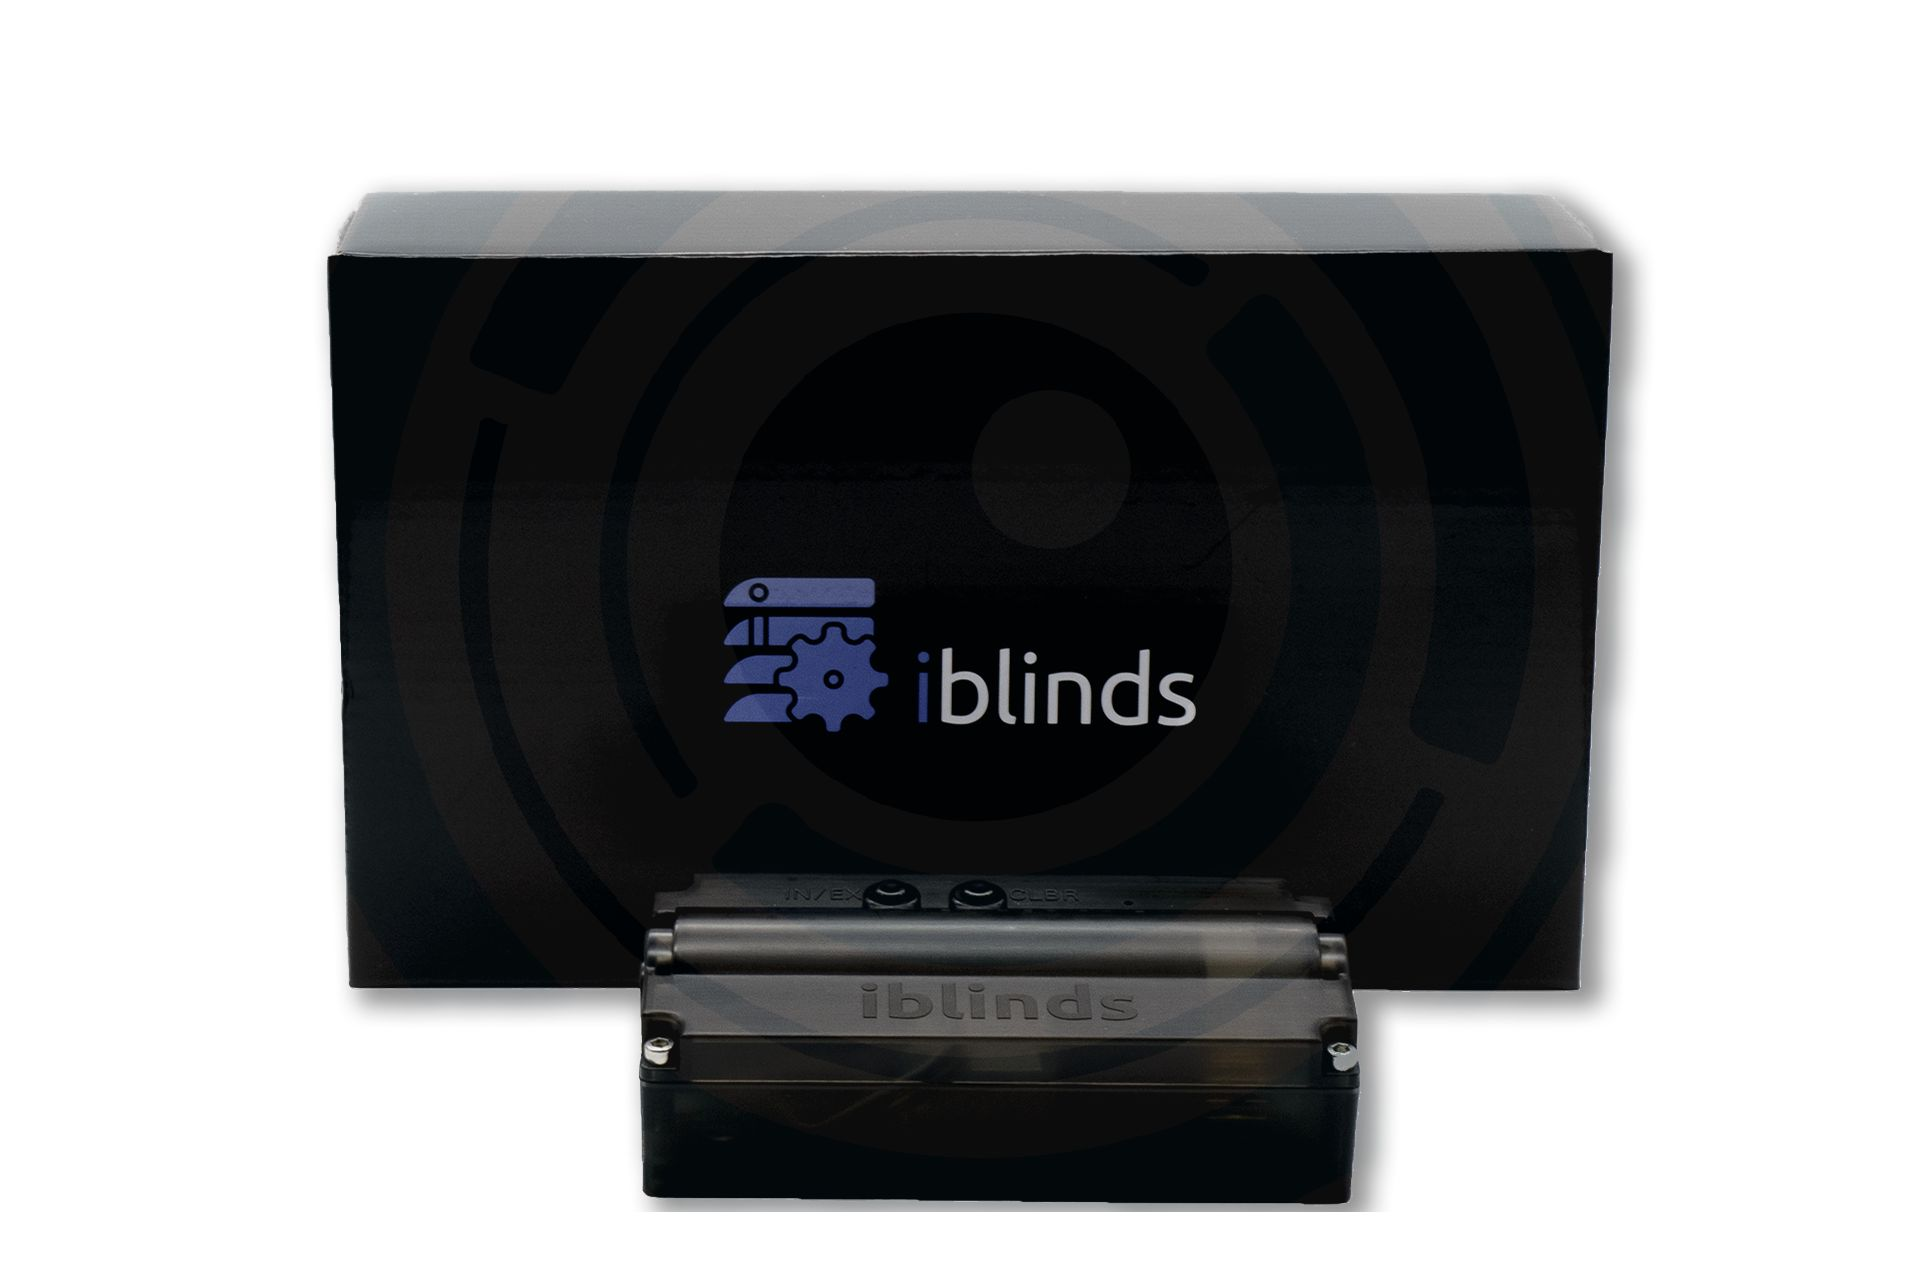 iBlinds boxed